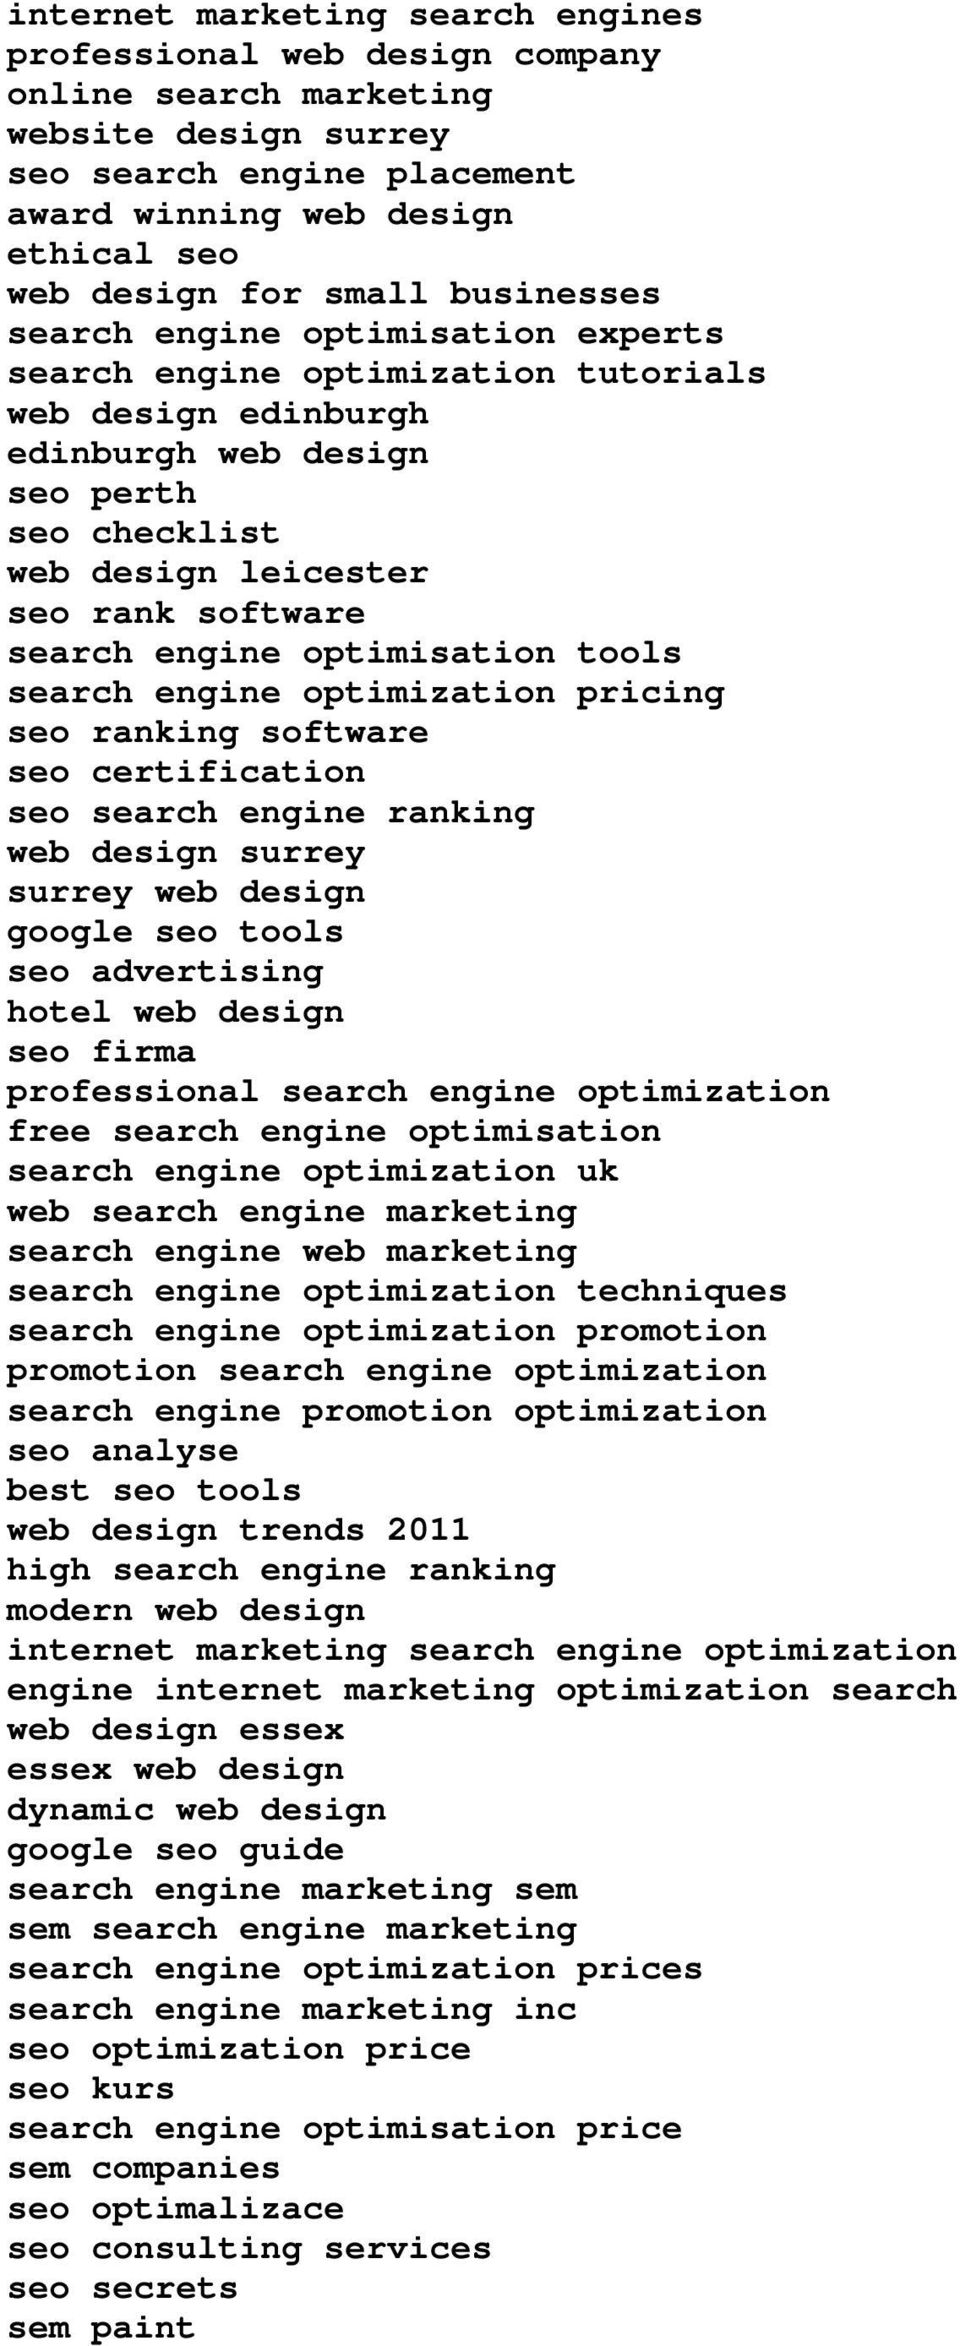 engine optimisation tools search engine optimization pricing seo ranking software seo certification seo search engine ranking web design surrey surrey web design google seo tools seo advertising